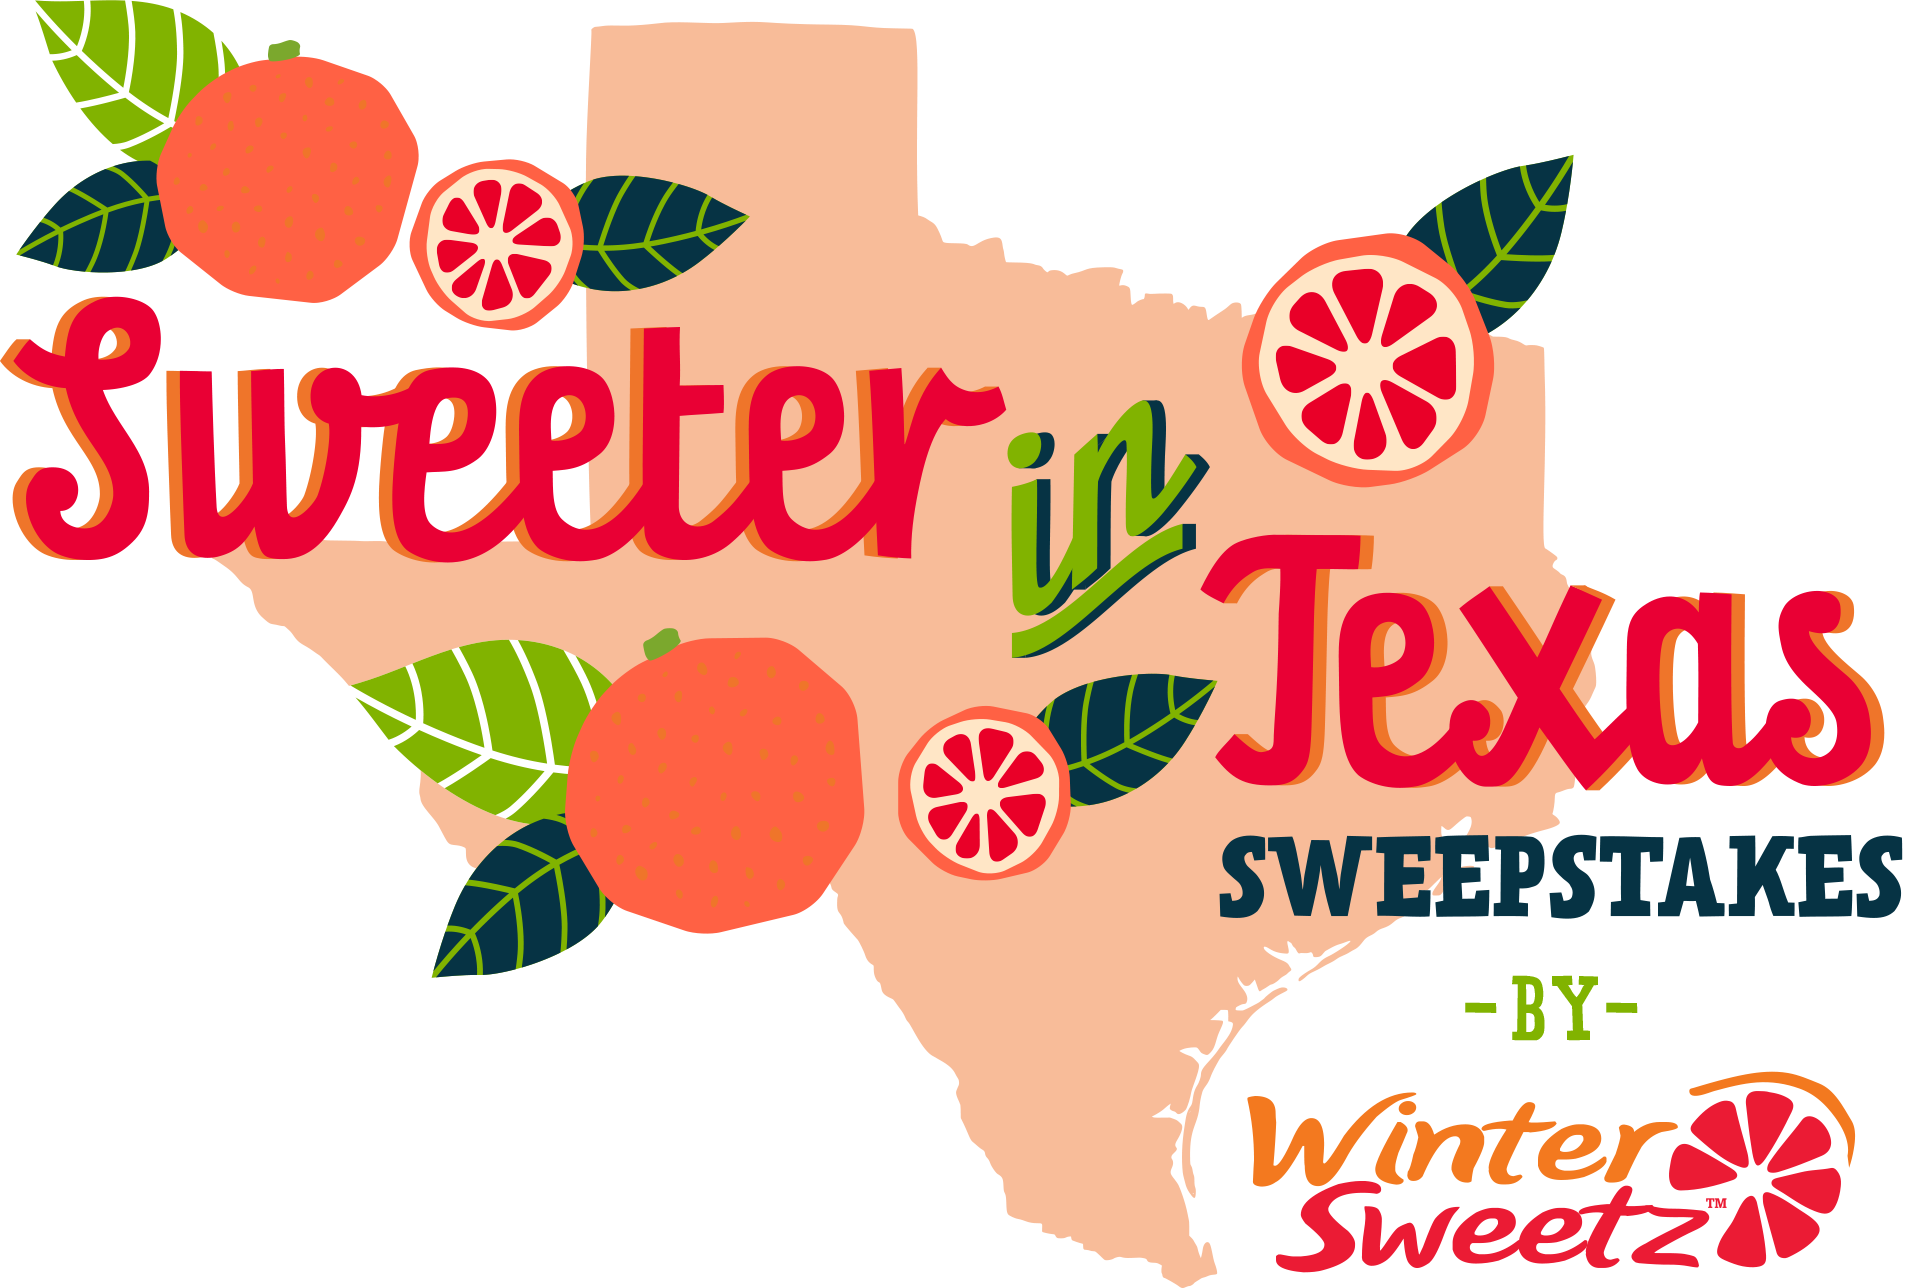 logo for Sweeter in Texas Sweepstakes by Winter Sweetz